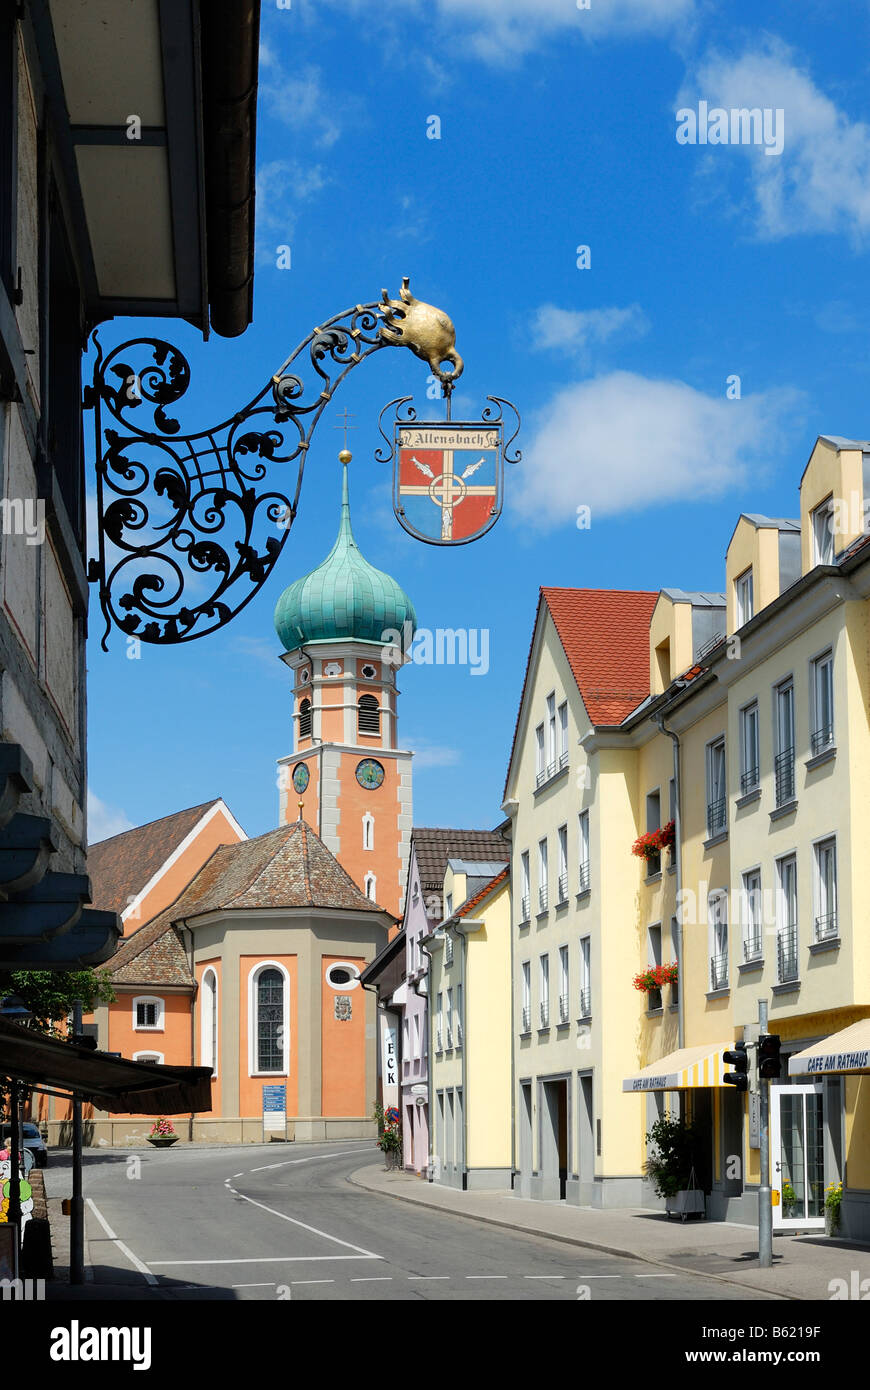 Sign with coat of arms of the the municipality and the Nikolauskirche Church, Allensbach, Constance district, Baden - Stock Image